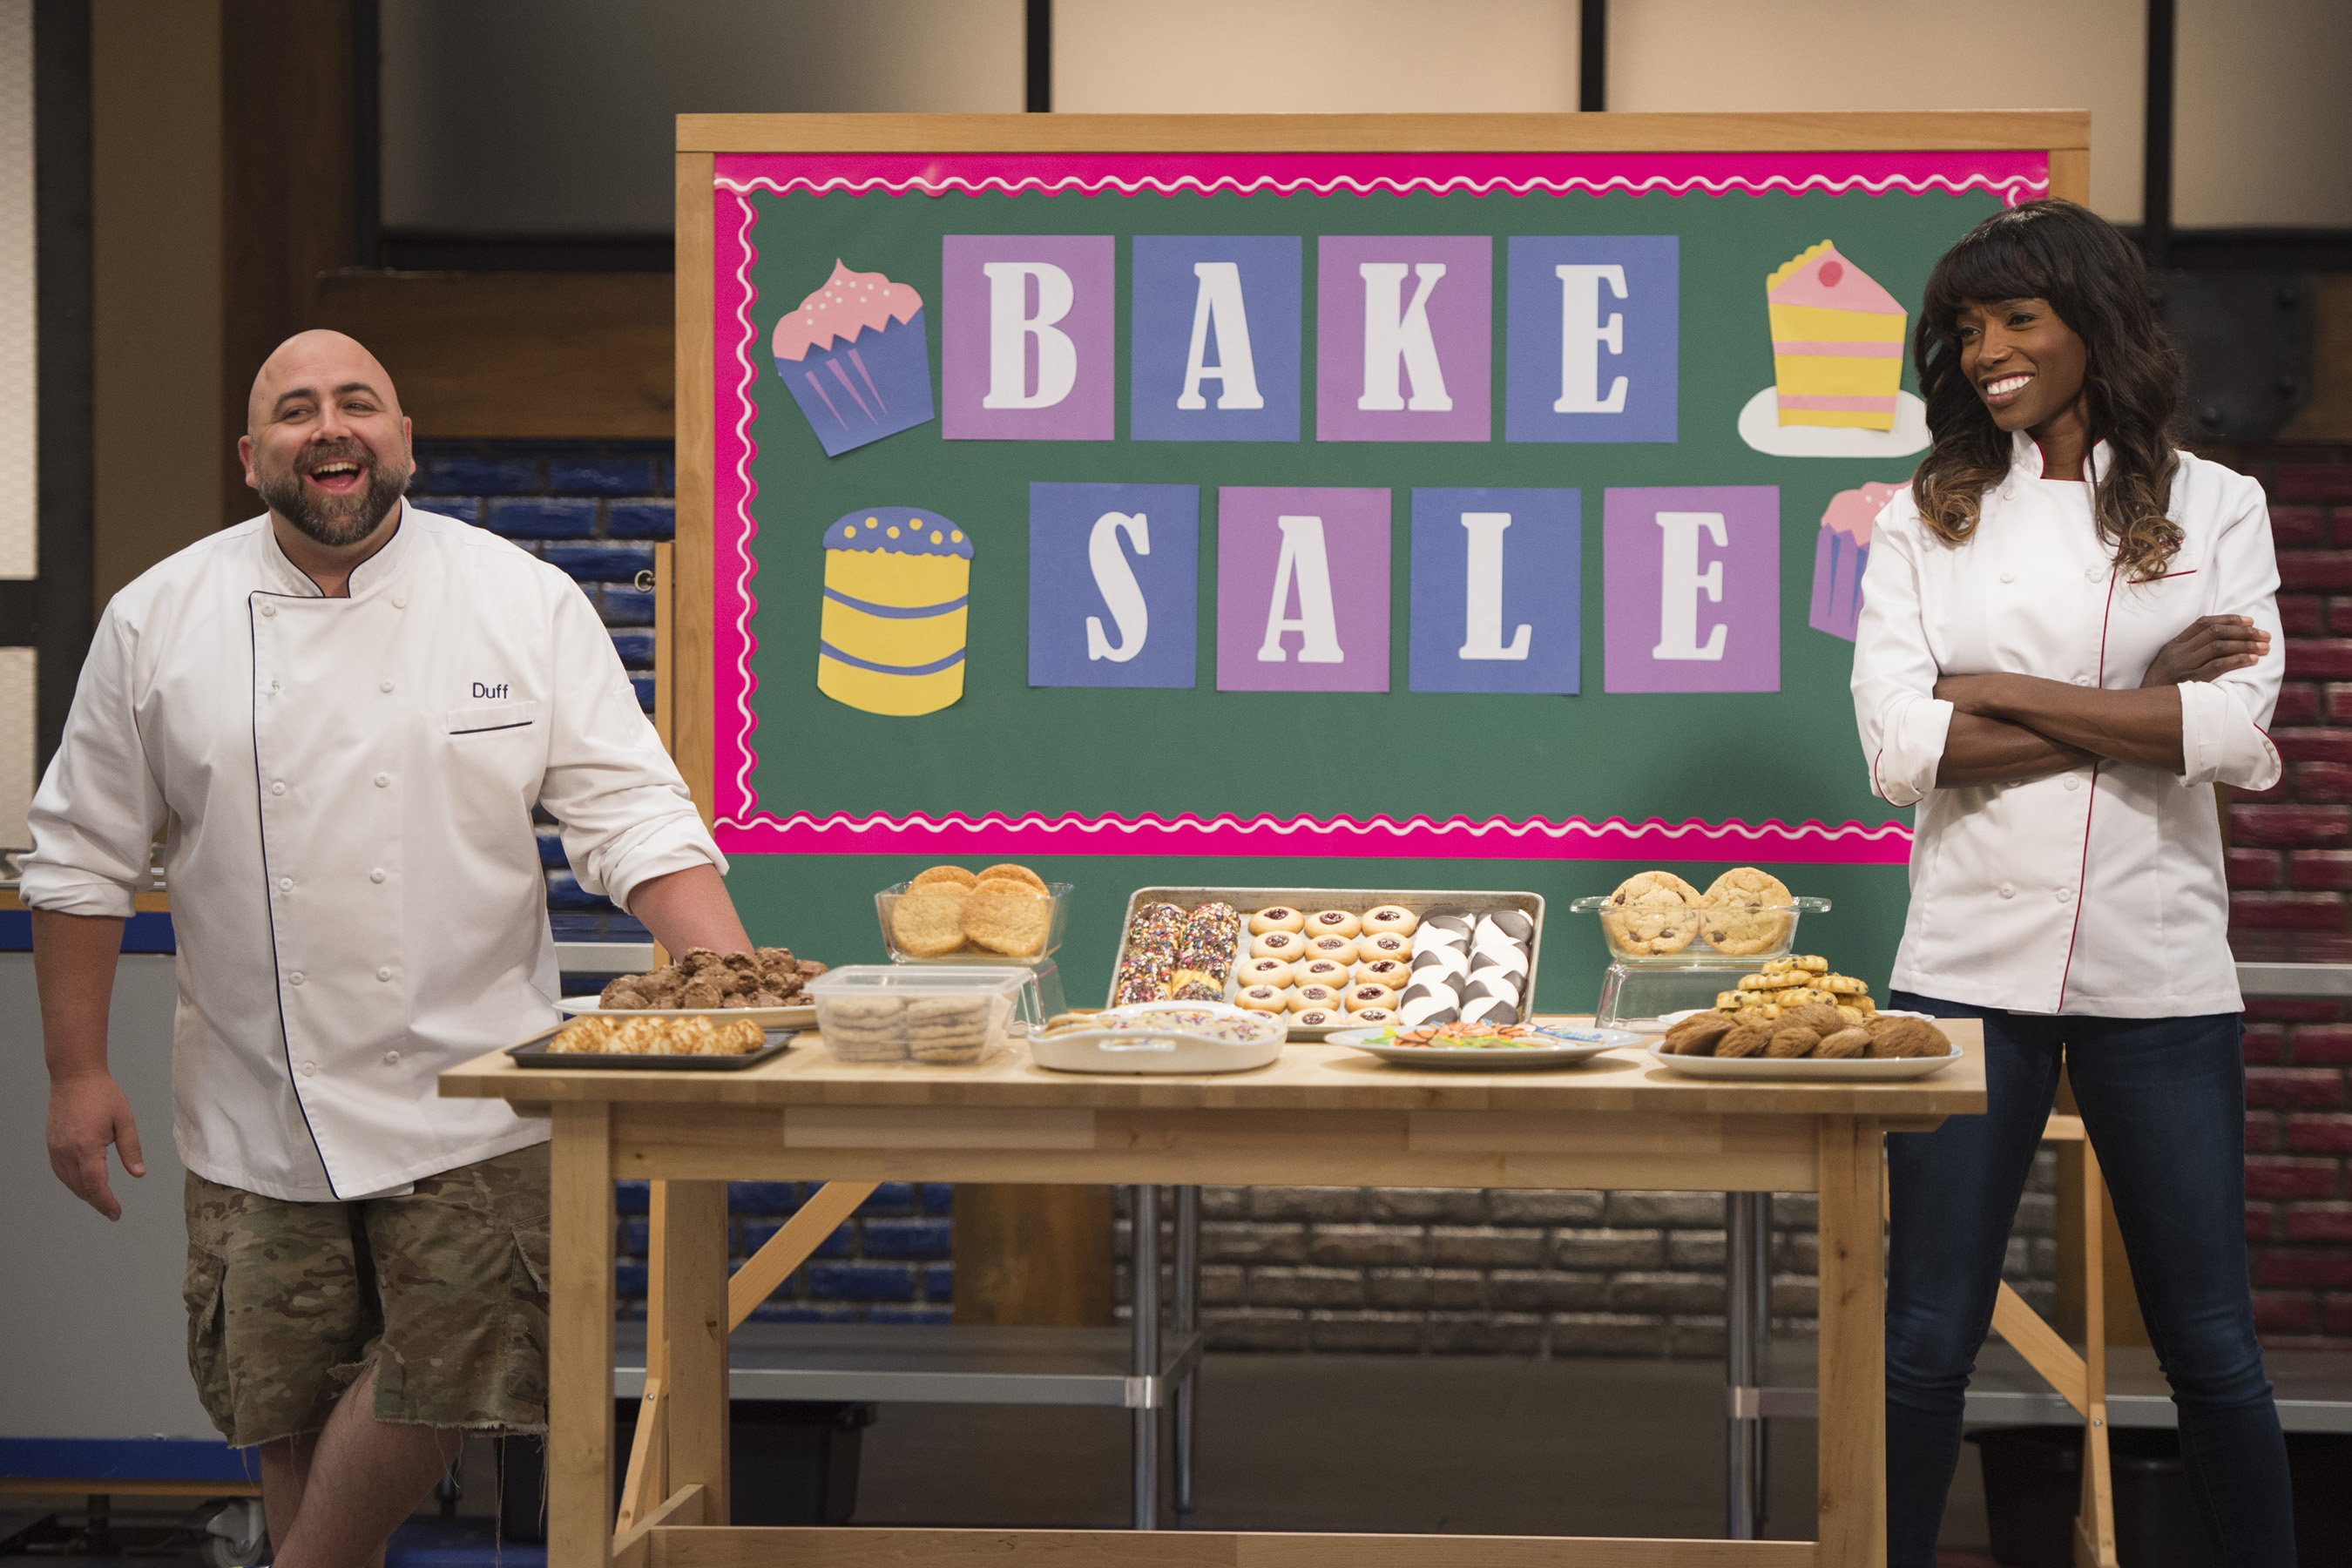 Hosts Duff Goldman and Lorraine Pascale on Food Network's Worst Bakers in America